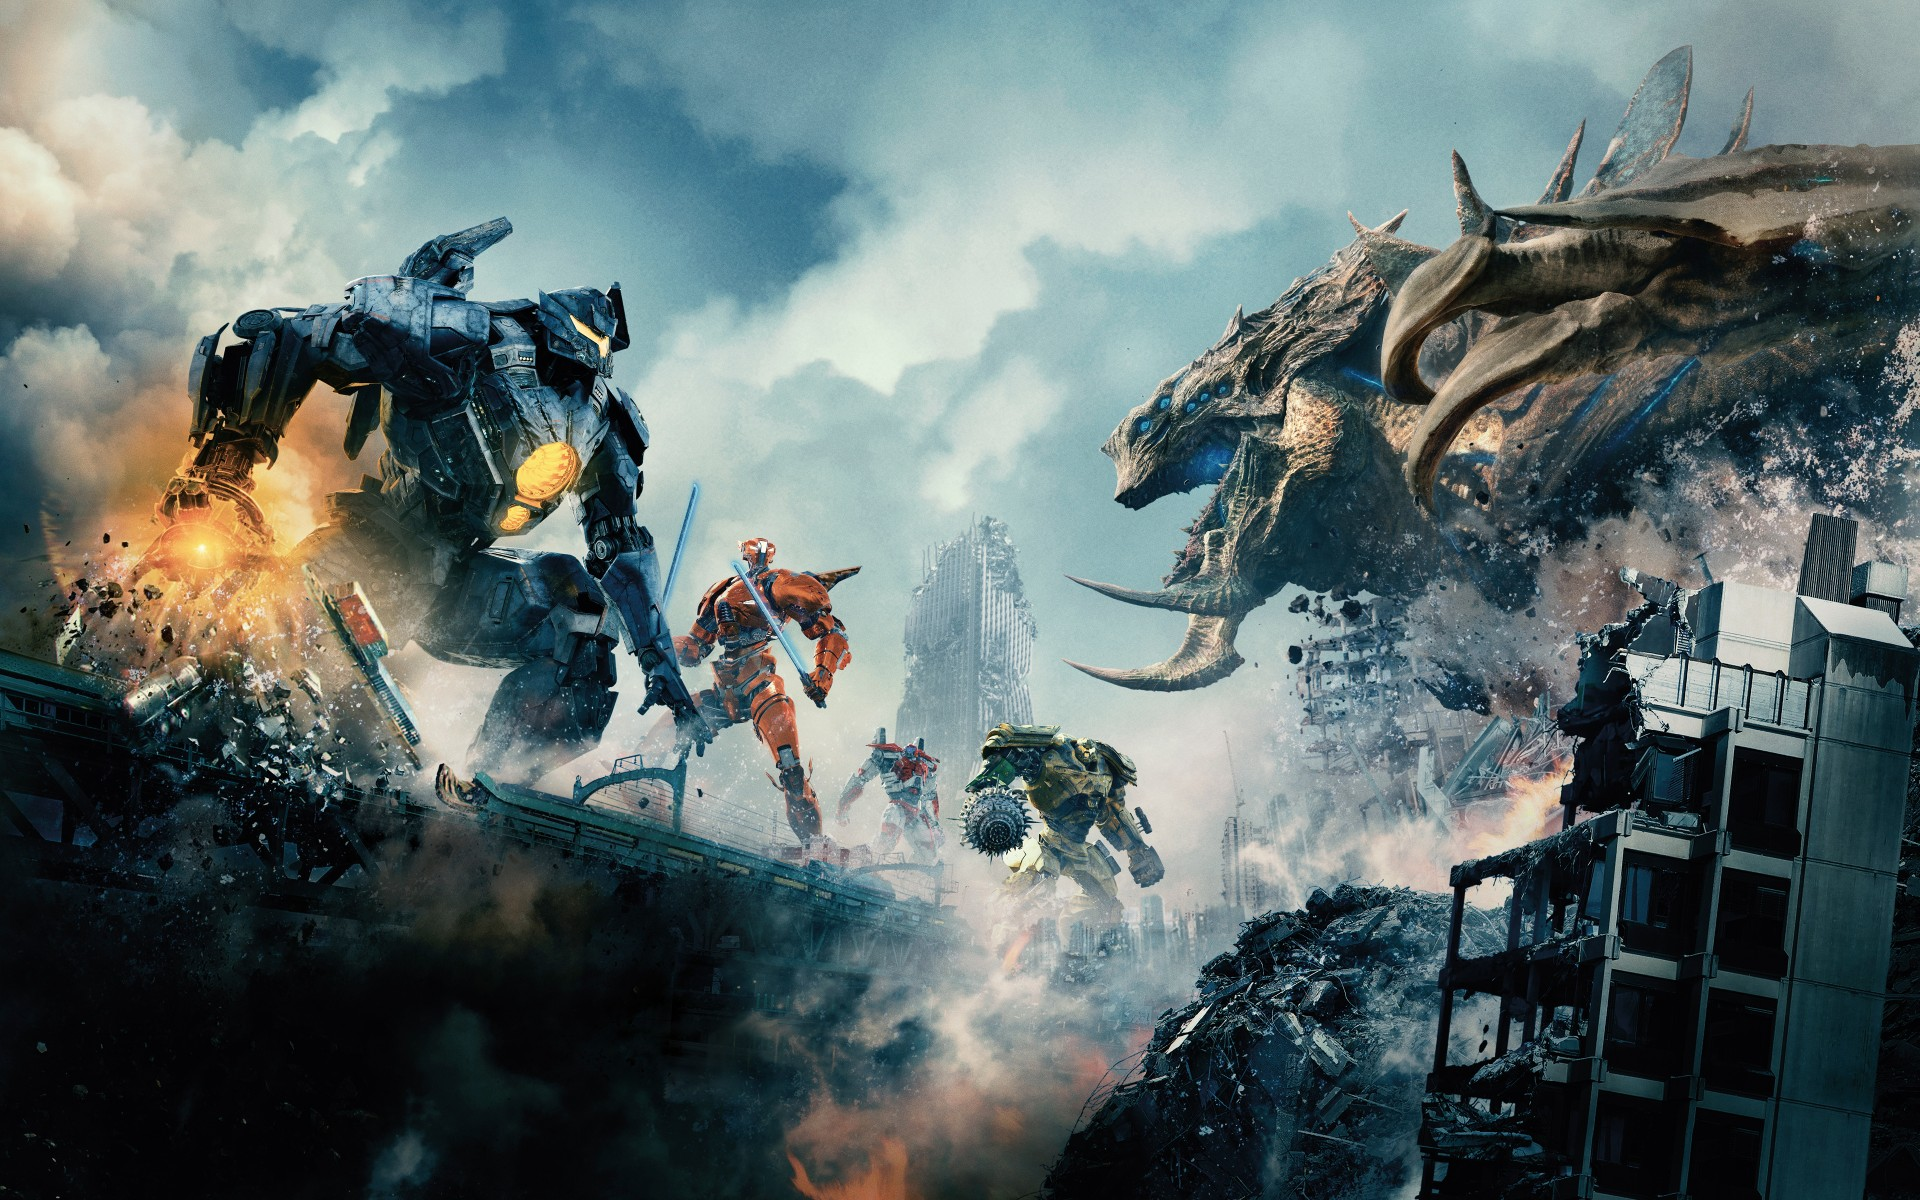 Download Wallpaper Movie Action - Pacific-Rim-Uprising-2018-Movie-Wallpaper-1920x1200  Picture_428070.jpg